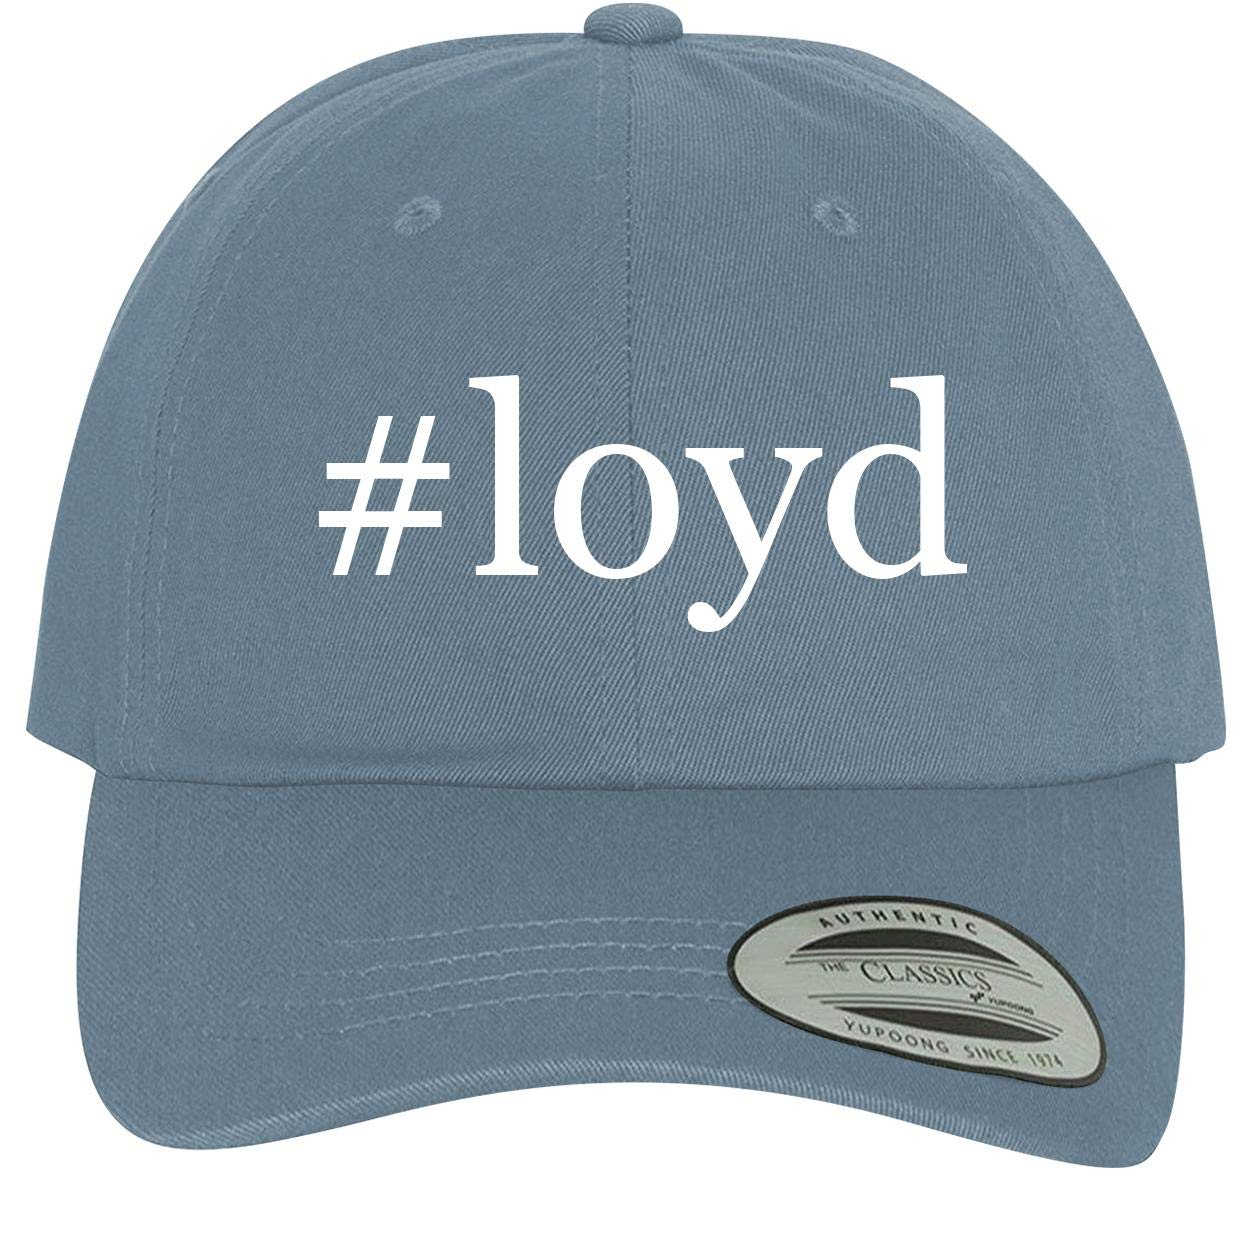 Comfortable Dad Hat Baseball Cap BH Cool Designs #Loyd